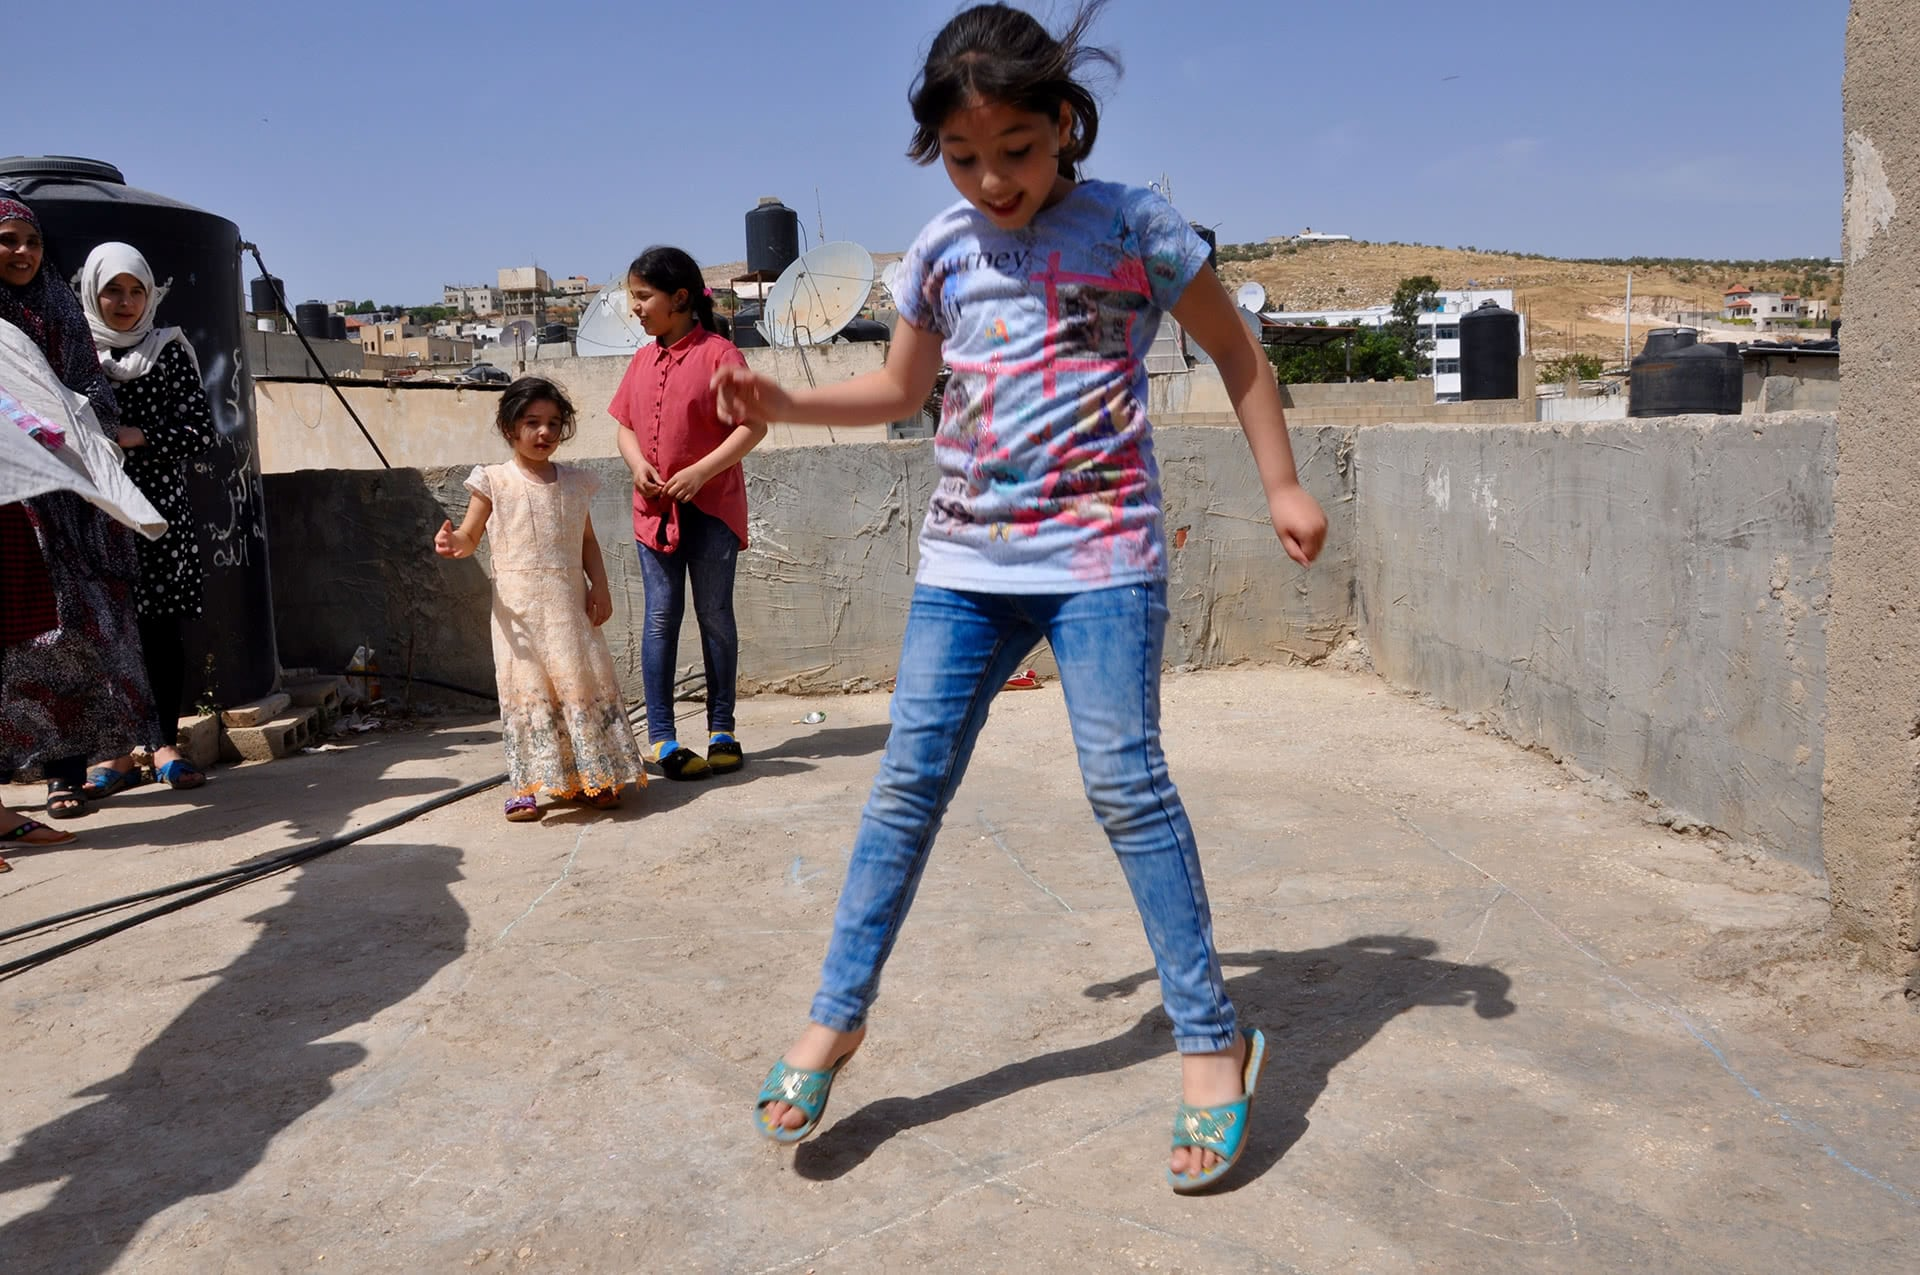 Hanan Abd al-Jawad, 9, plays on the roof with her sisters in Fara'a refugee camp. (Photo: DCIP / Emily Thomas)